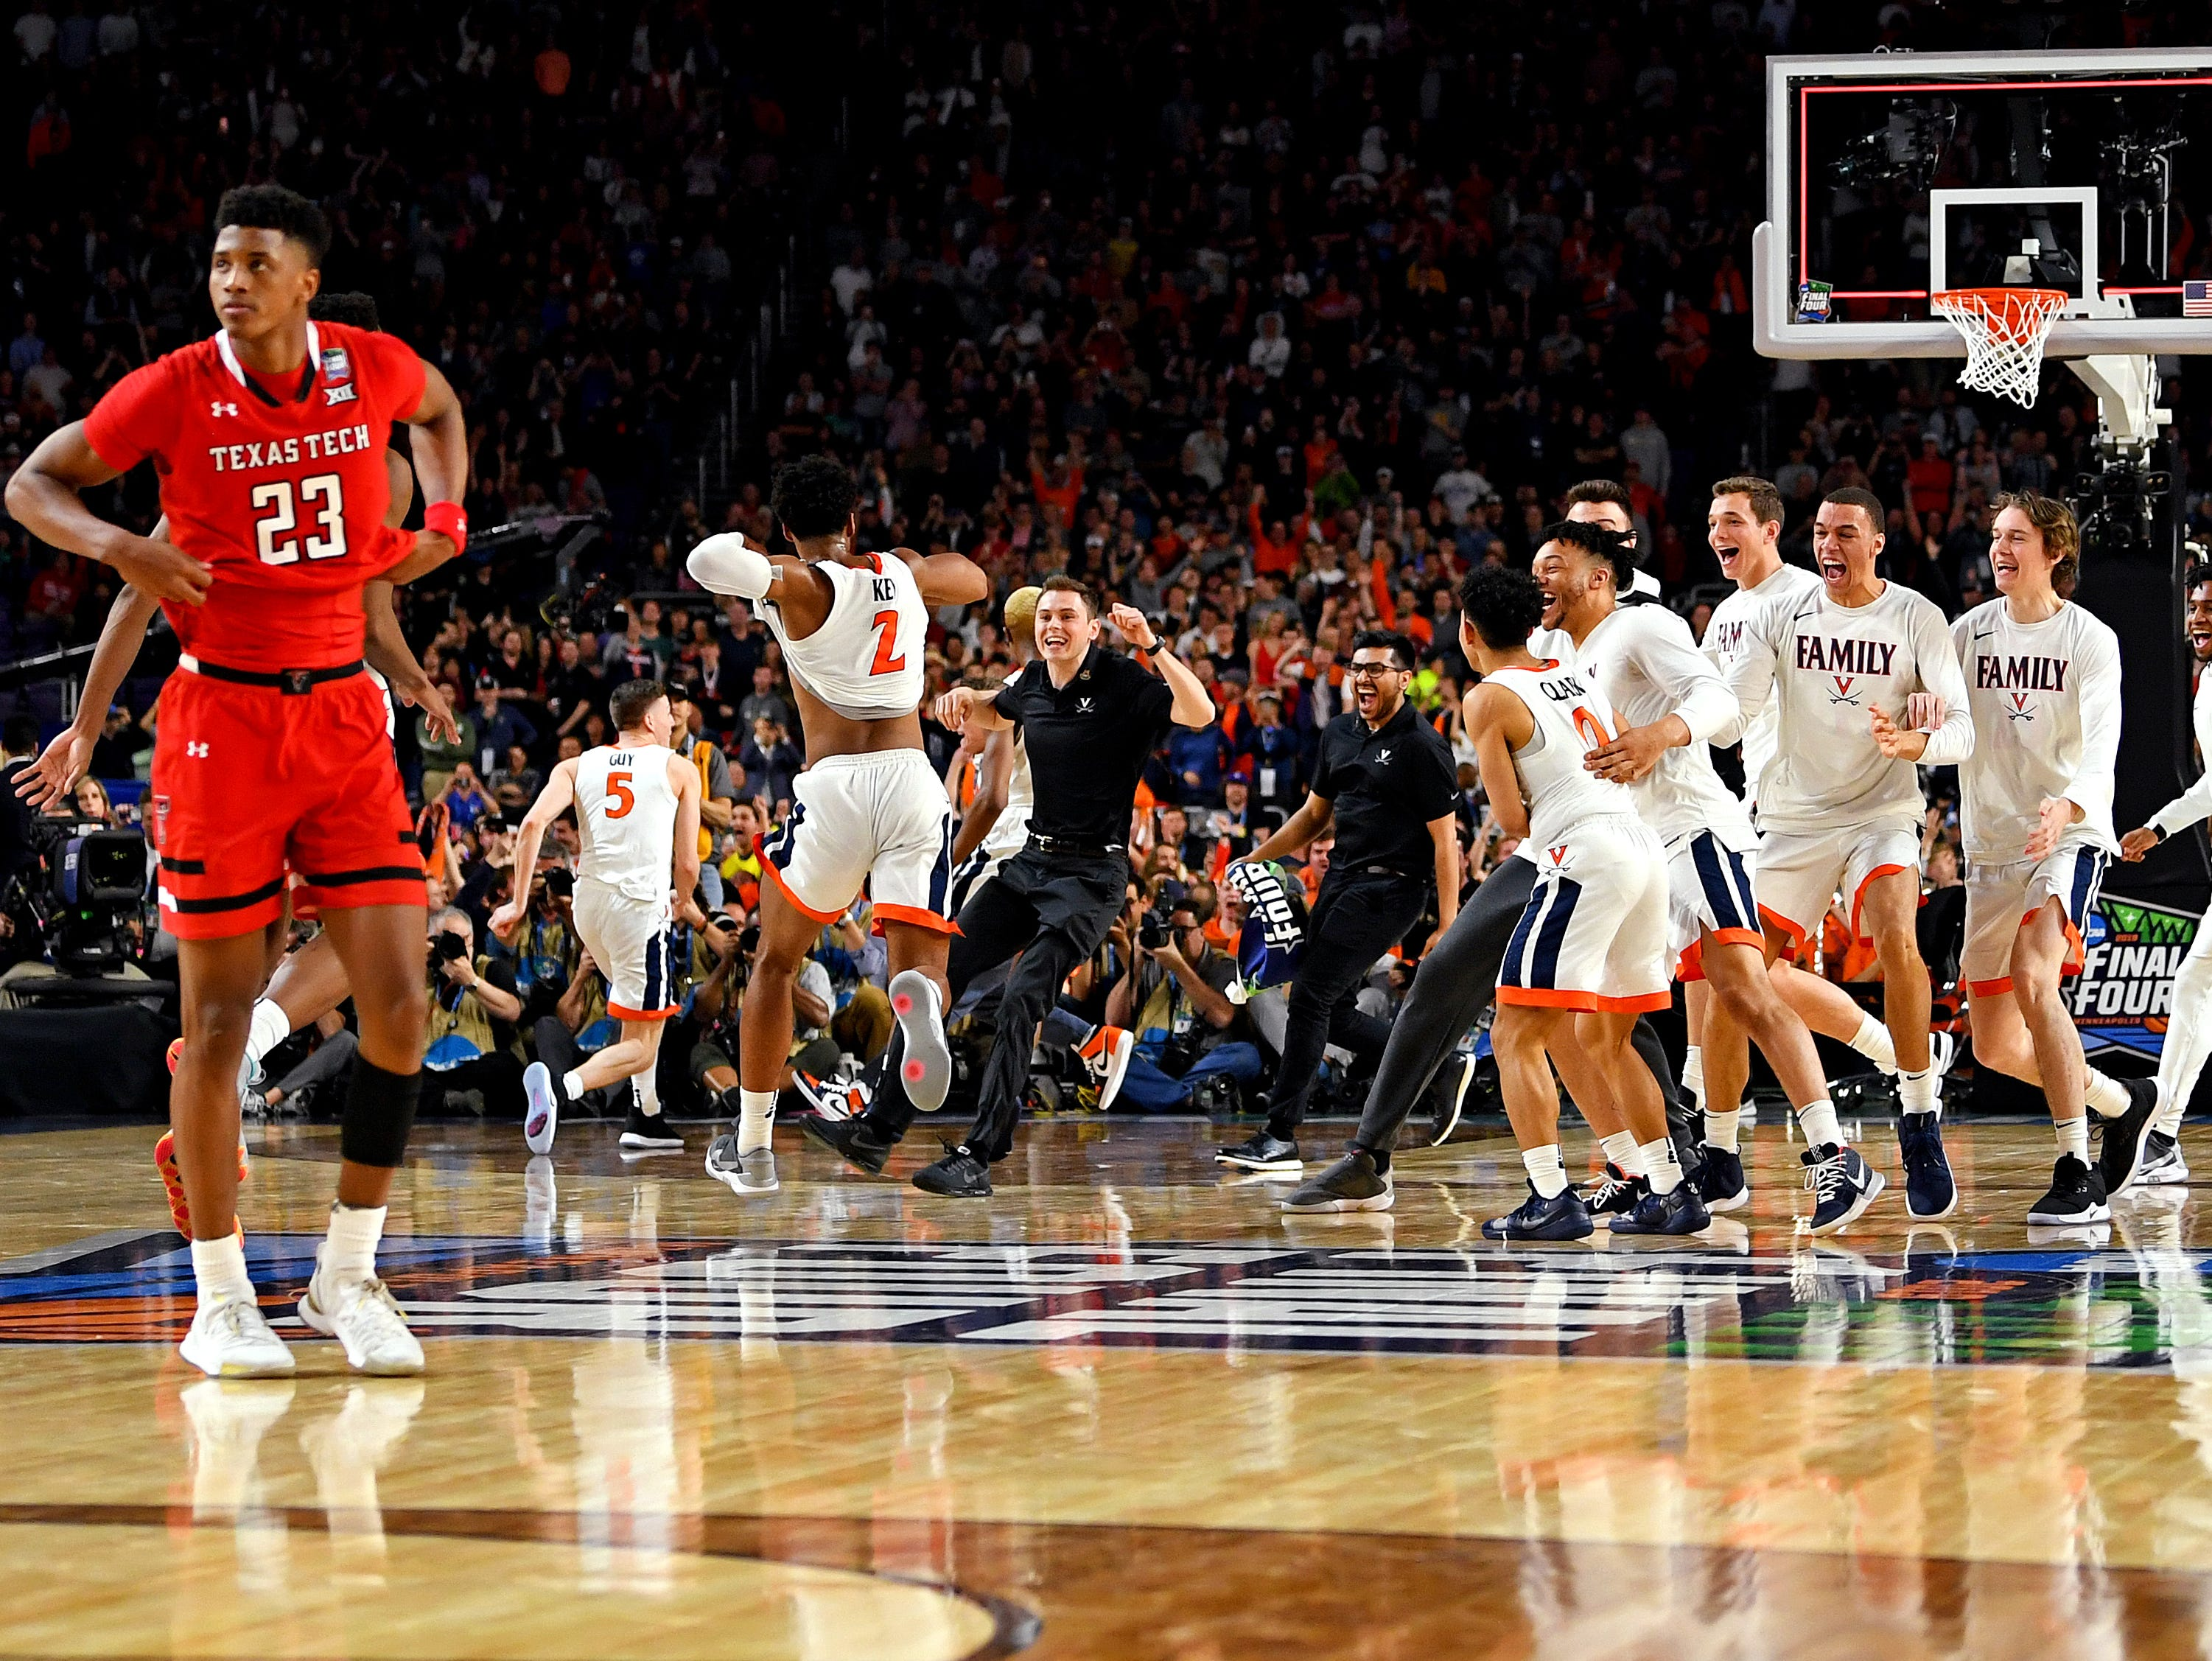 Apr 8, 2019; Minneapolis, MN, USA; The Virginia Cavaliers celebrate beating Texas Tech Red Raiders in the championship game of the 2019 men's Final Four at US Bank Stadium. Mandatory Credit: Bob Donnan-USA TODAY Sports